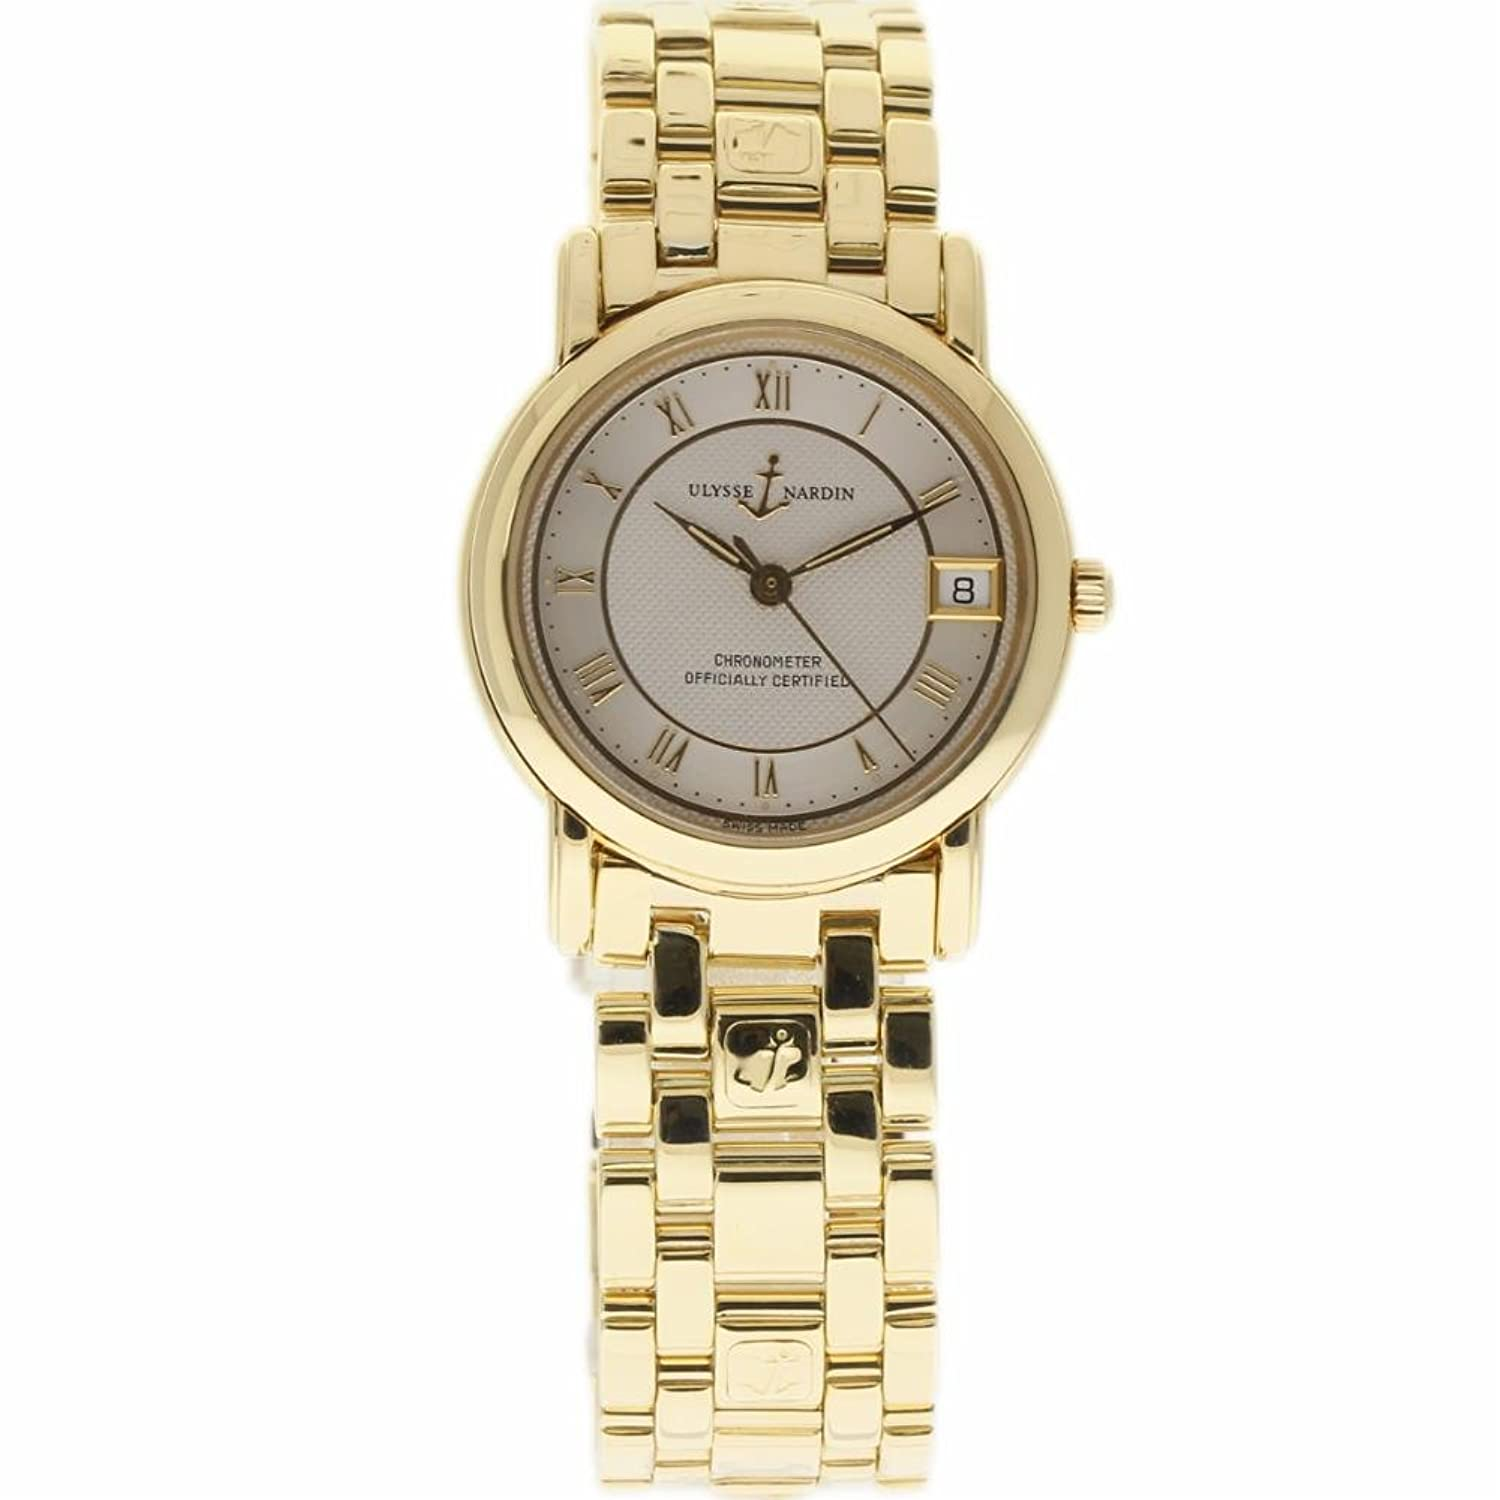 Amazon.com: Ulysse Nardin San Marco swiss-automatic womens Watch 131-88 (Certified Pre-owned): Ulysse Nardin: Watches